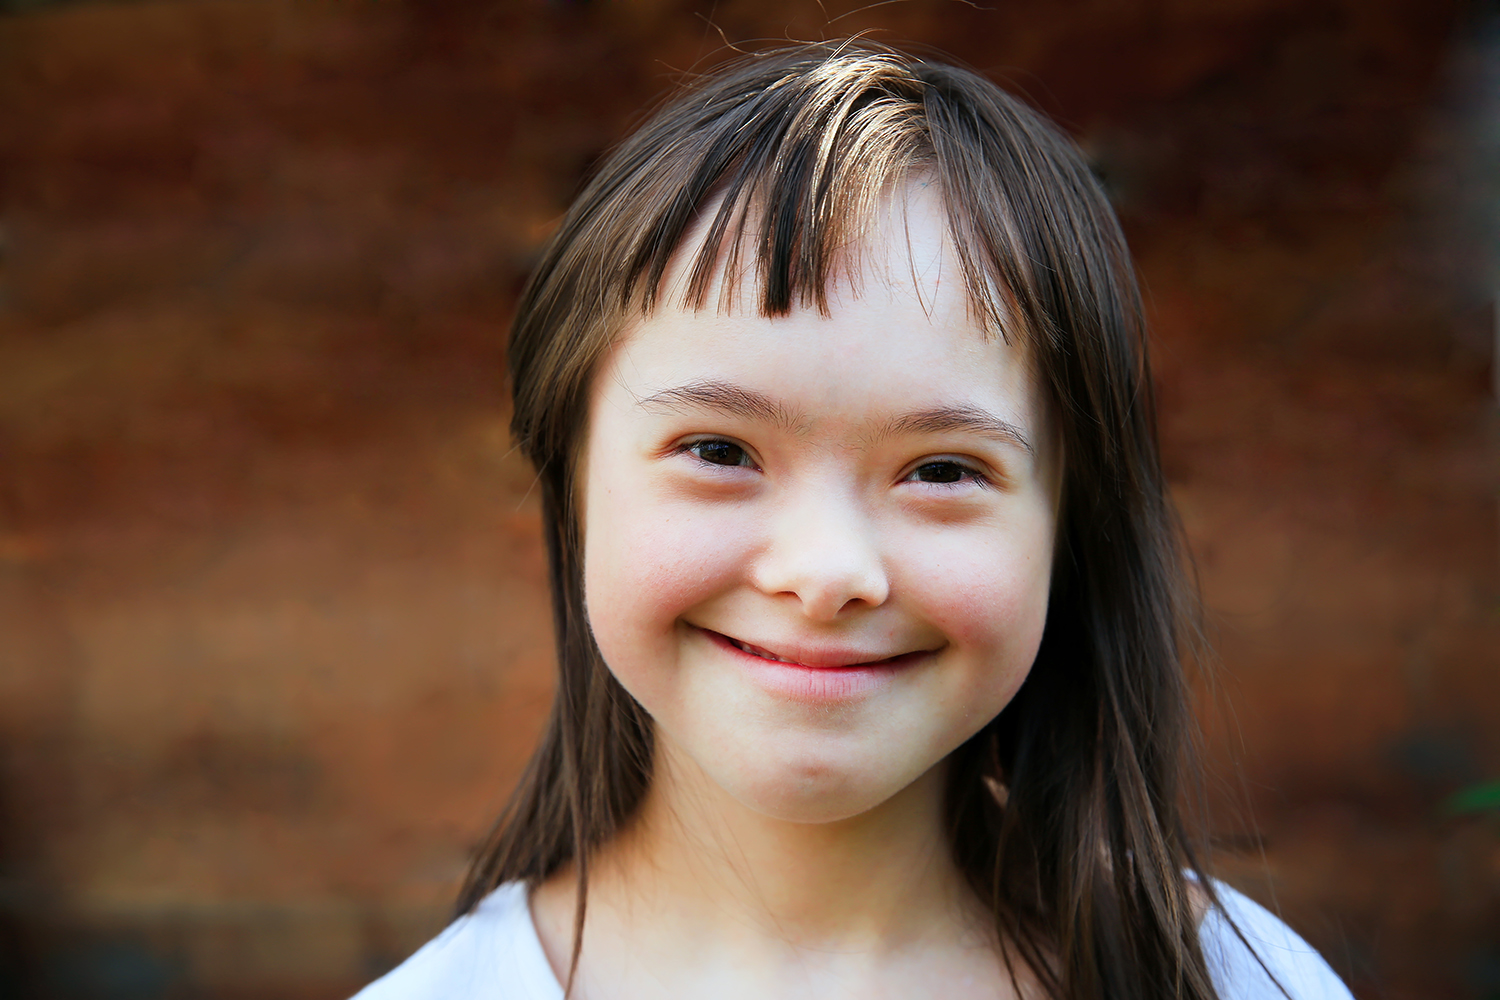 Down syndrome: 8 facts to know